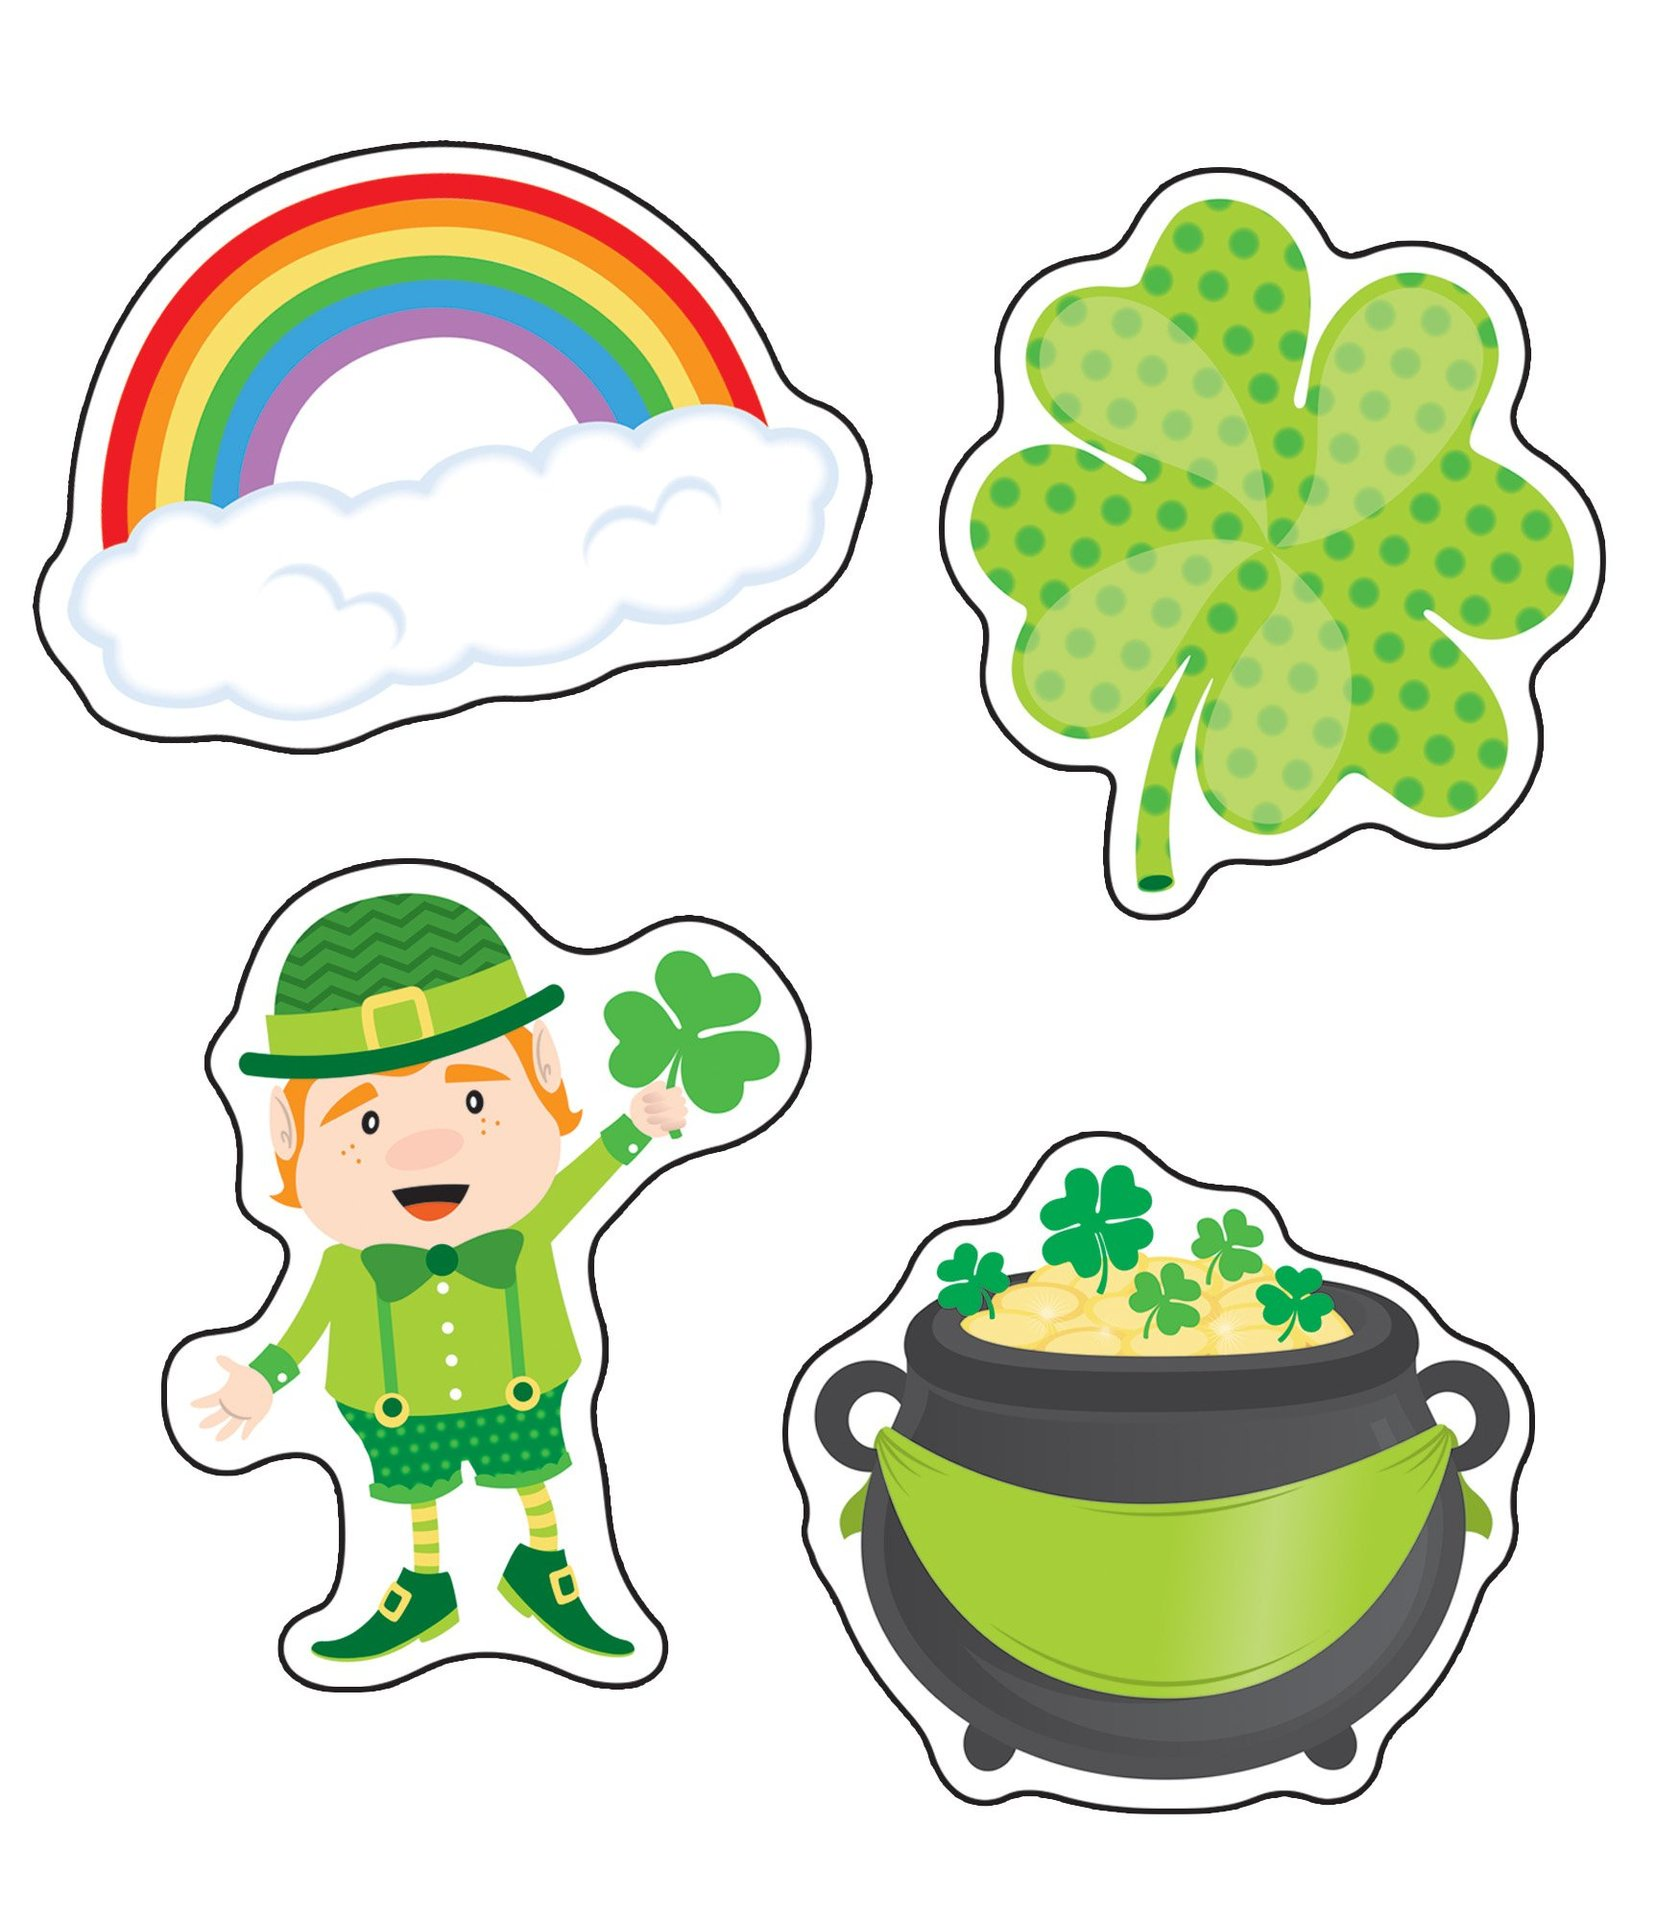 CD 120222 ST. PATRICK'S DAY CUTOUTS